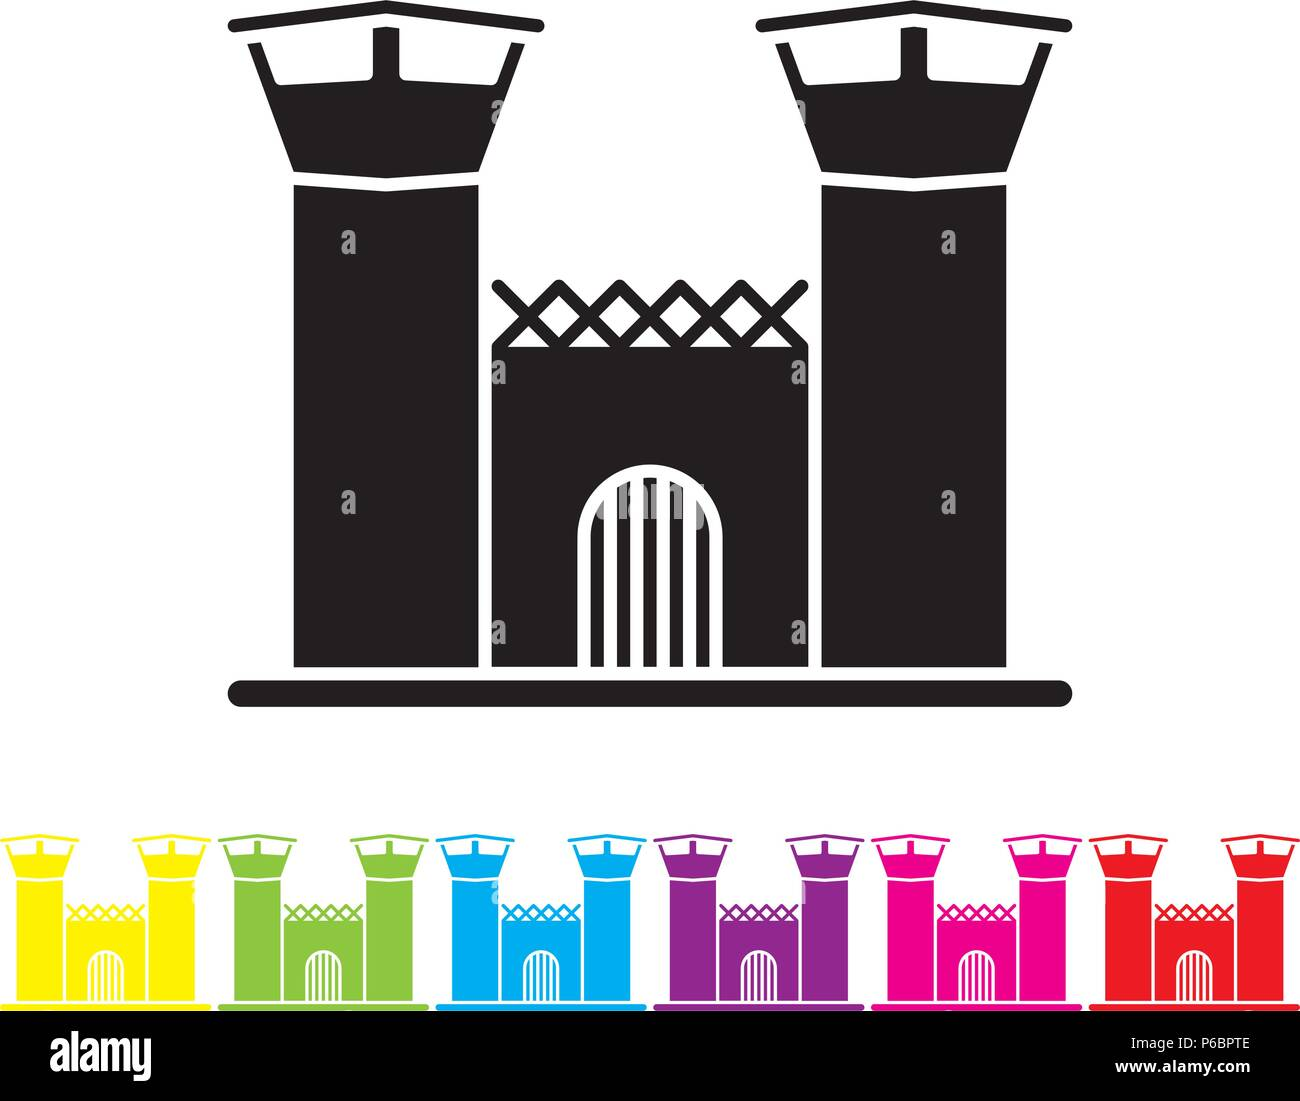 Jail house glyph icon vector. Law enforcement and criminal justice symbol. - Stock Vector